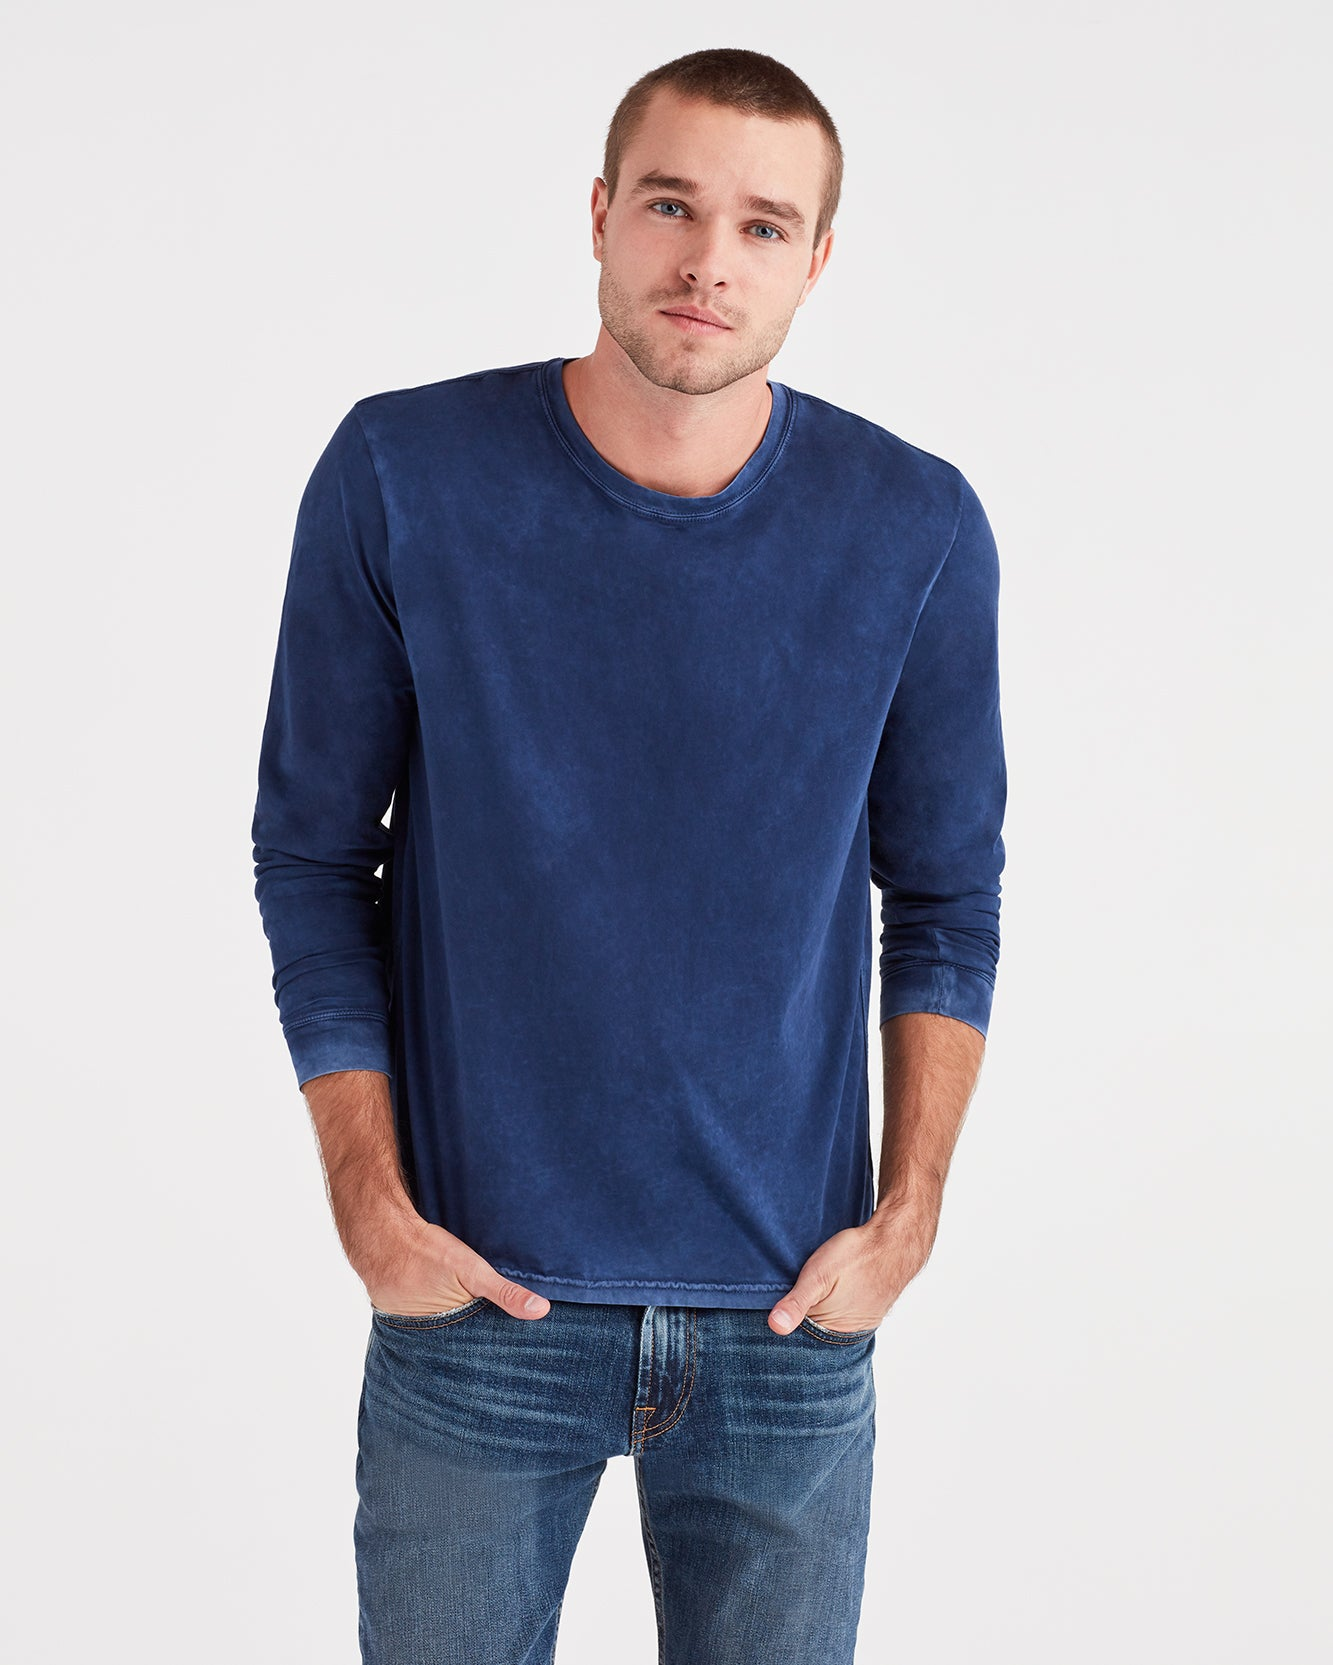 Image of Long Sleeve Washed Tee in Navy